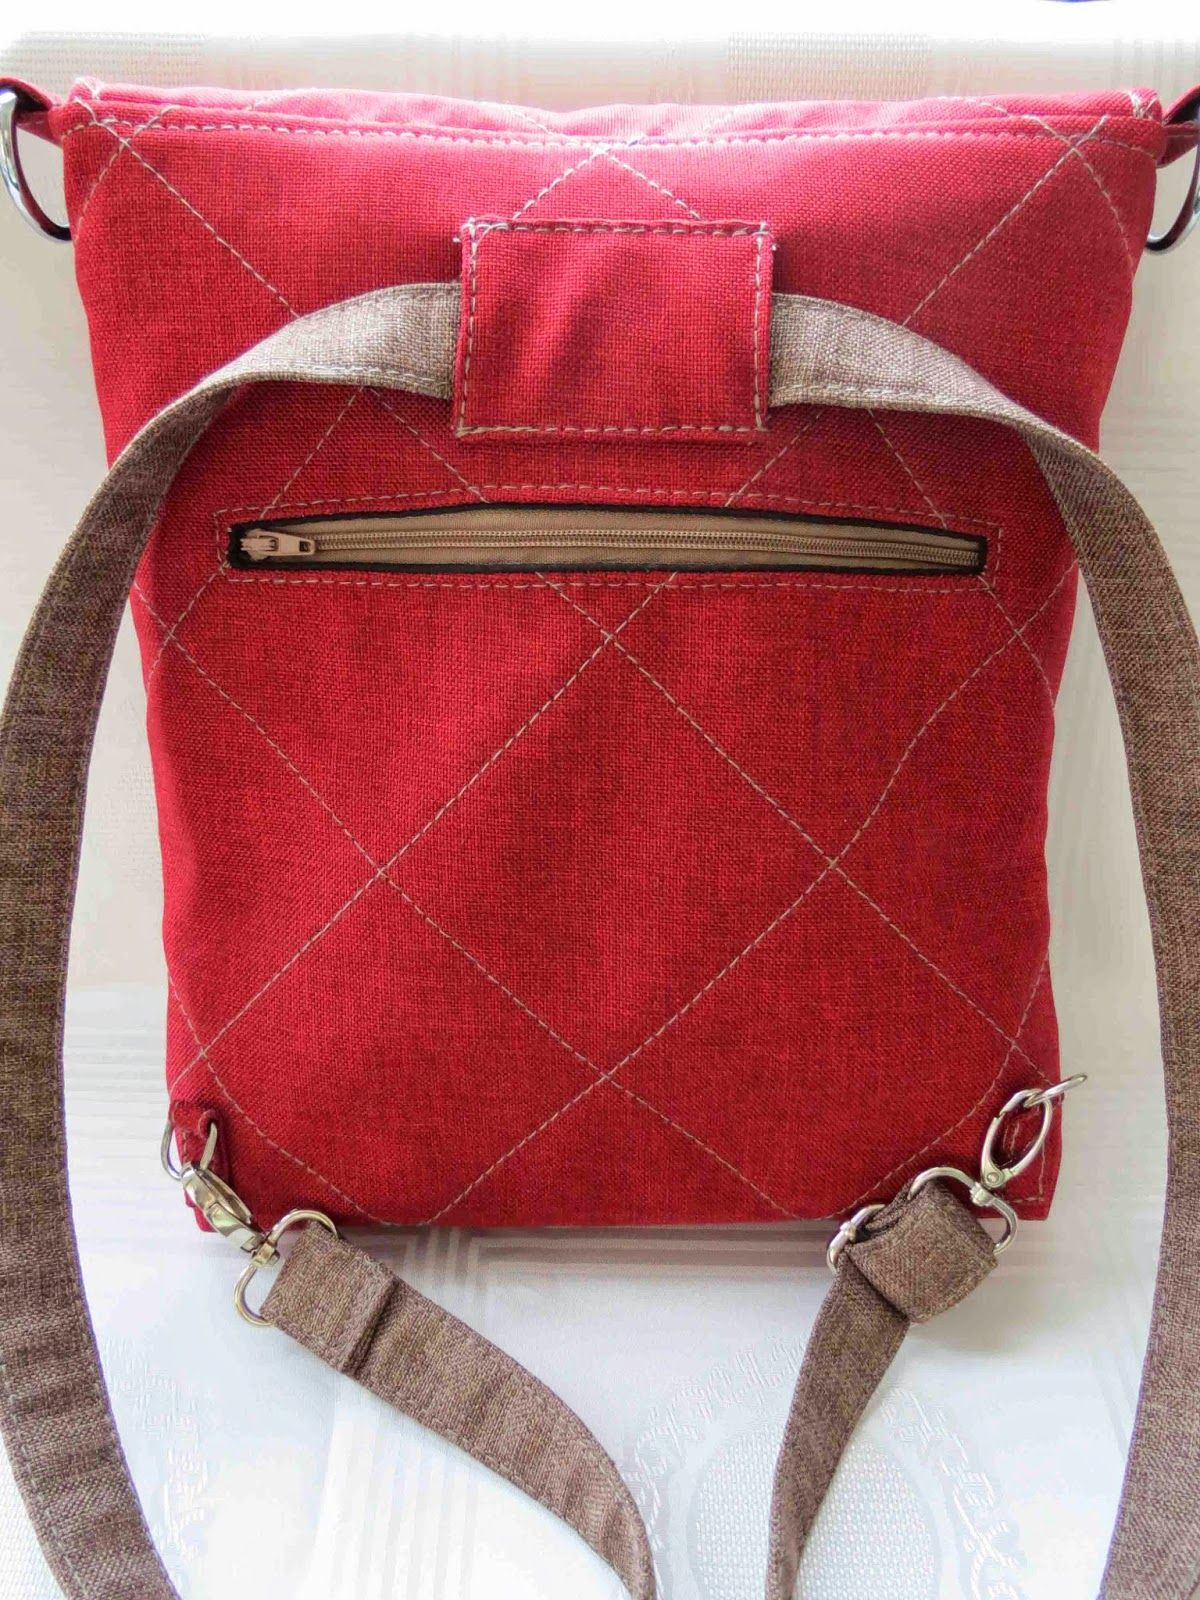 Tester's bags – Convertible